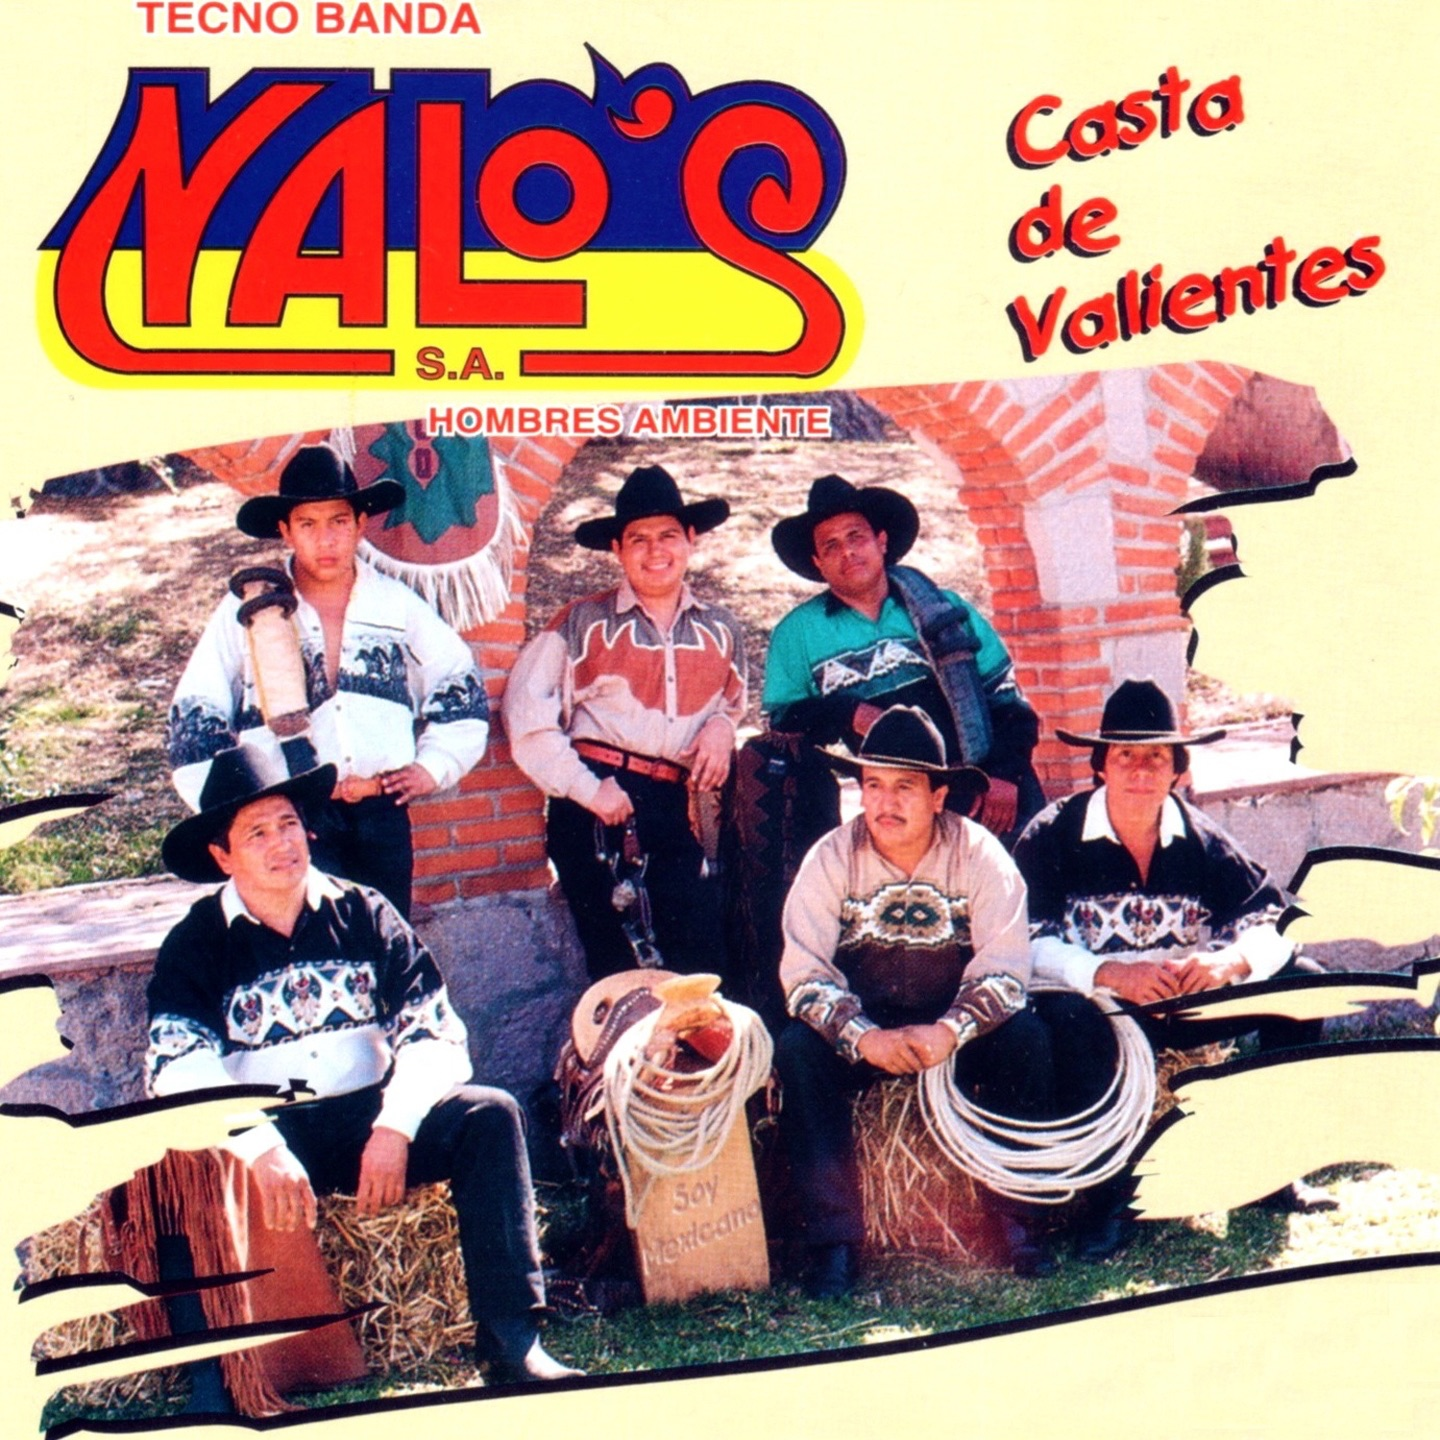 MP3 Songs Online:♫ Palabras de Mujer - Tecno Banda Nalo's Hombres Ambiente album Casta de Valientes. South America,Music,World listen to music online free without downloading.